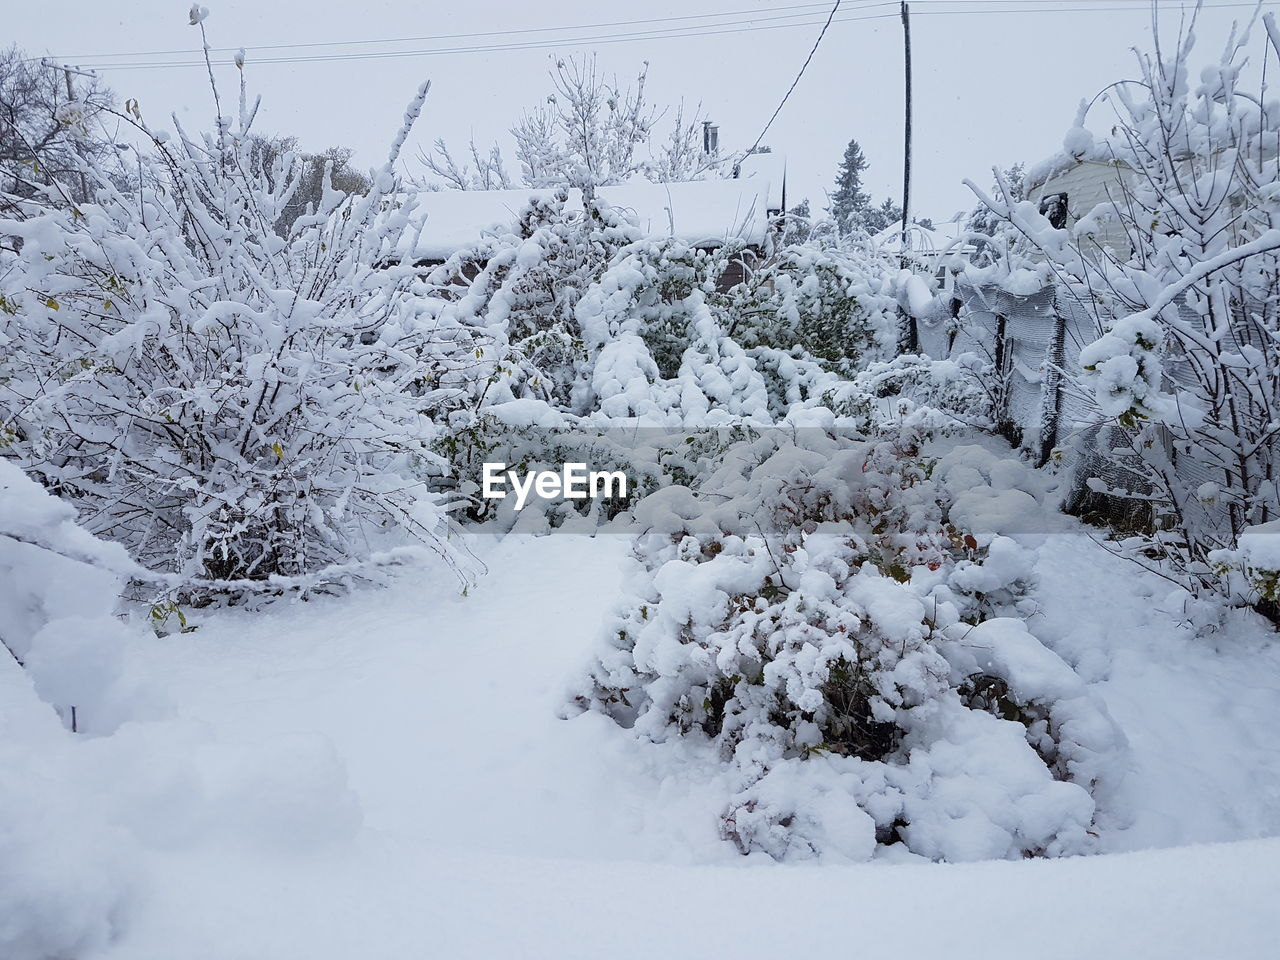 SNOW COVERED TREES ON FIELD DURING WINTER SEASON